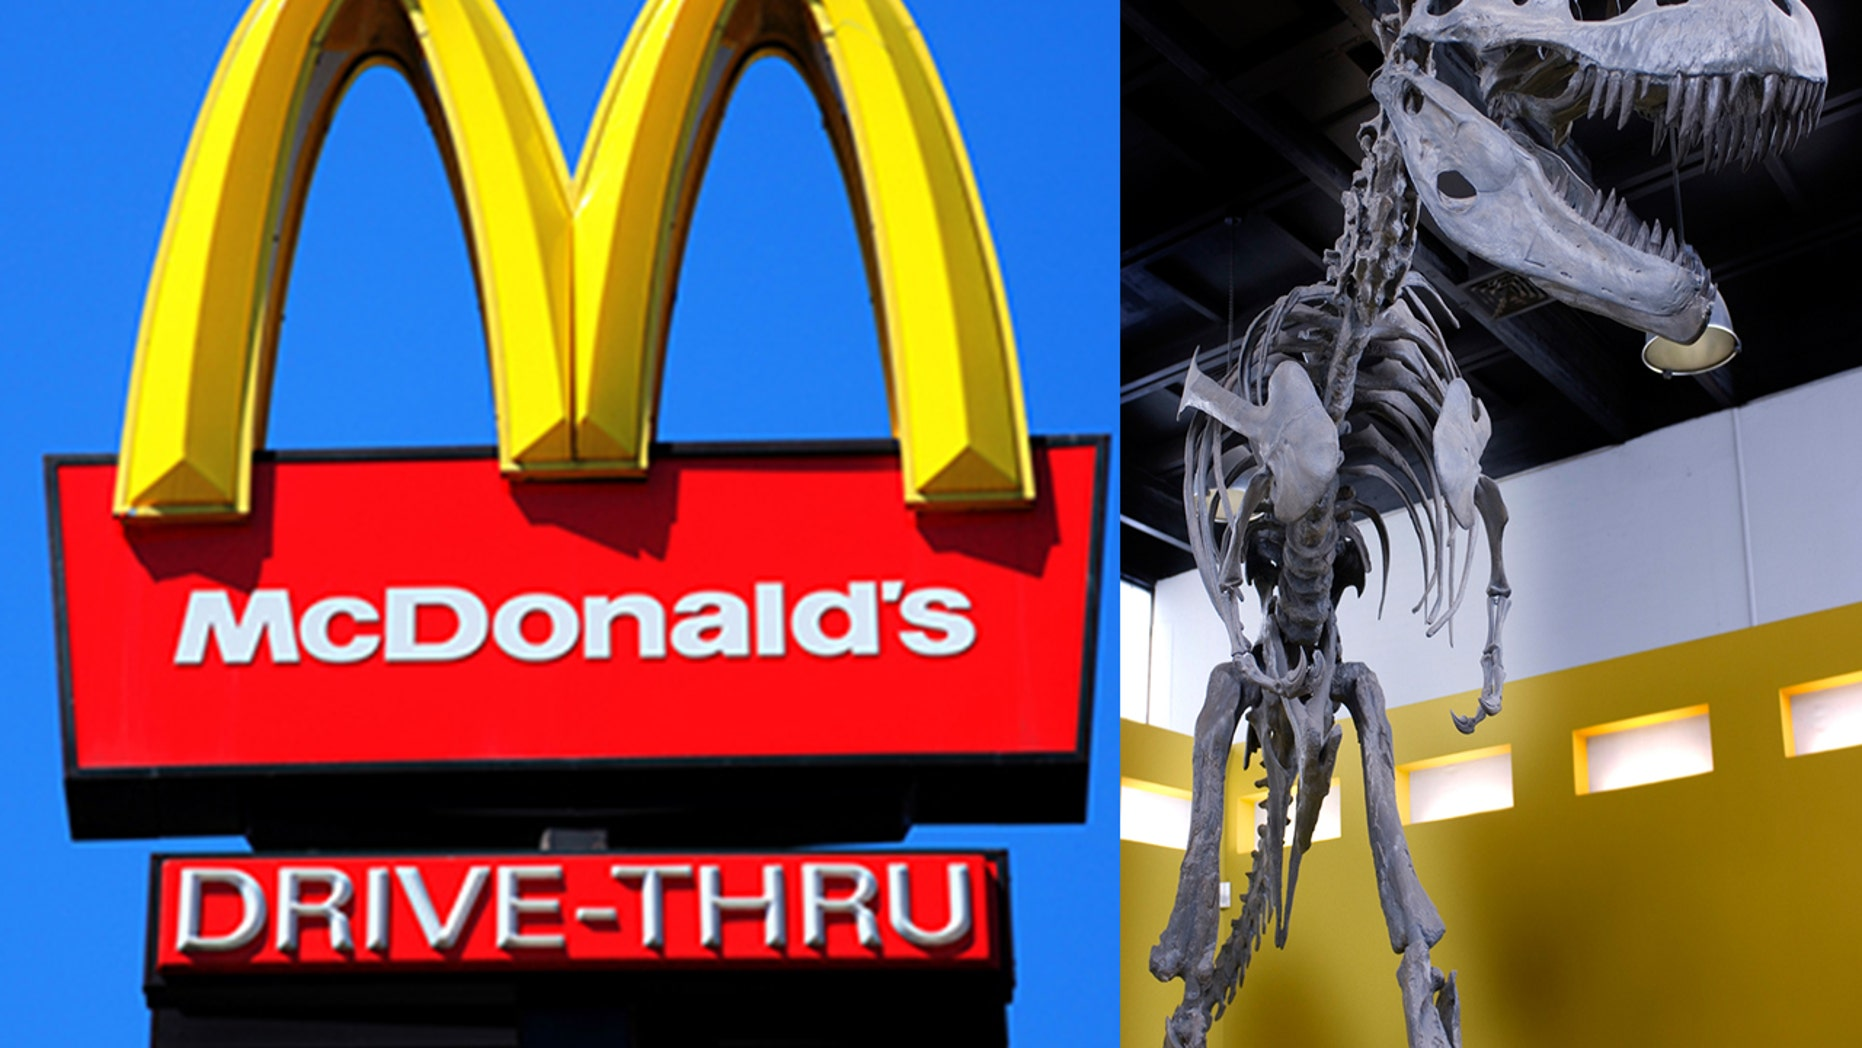 A dinosaur museum in British Columbia, Canada was not pleased over a 15-second McDonald's radio commercial that they felt belittled museums.